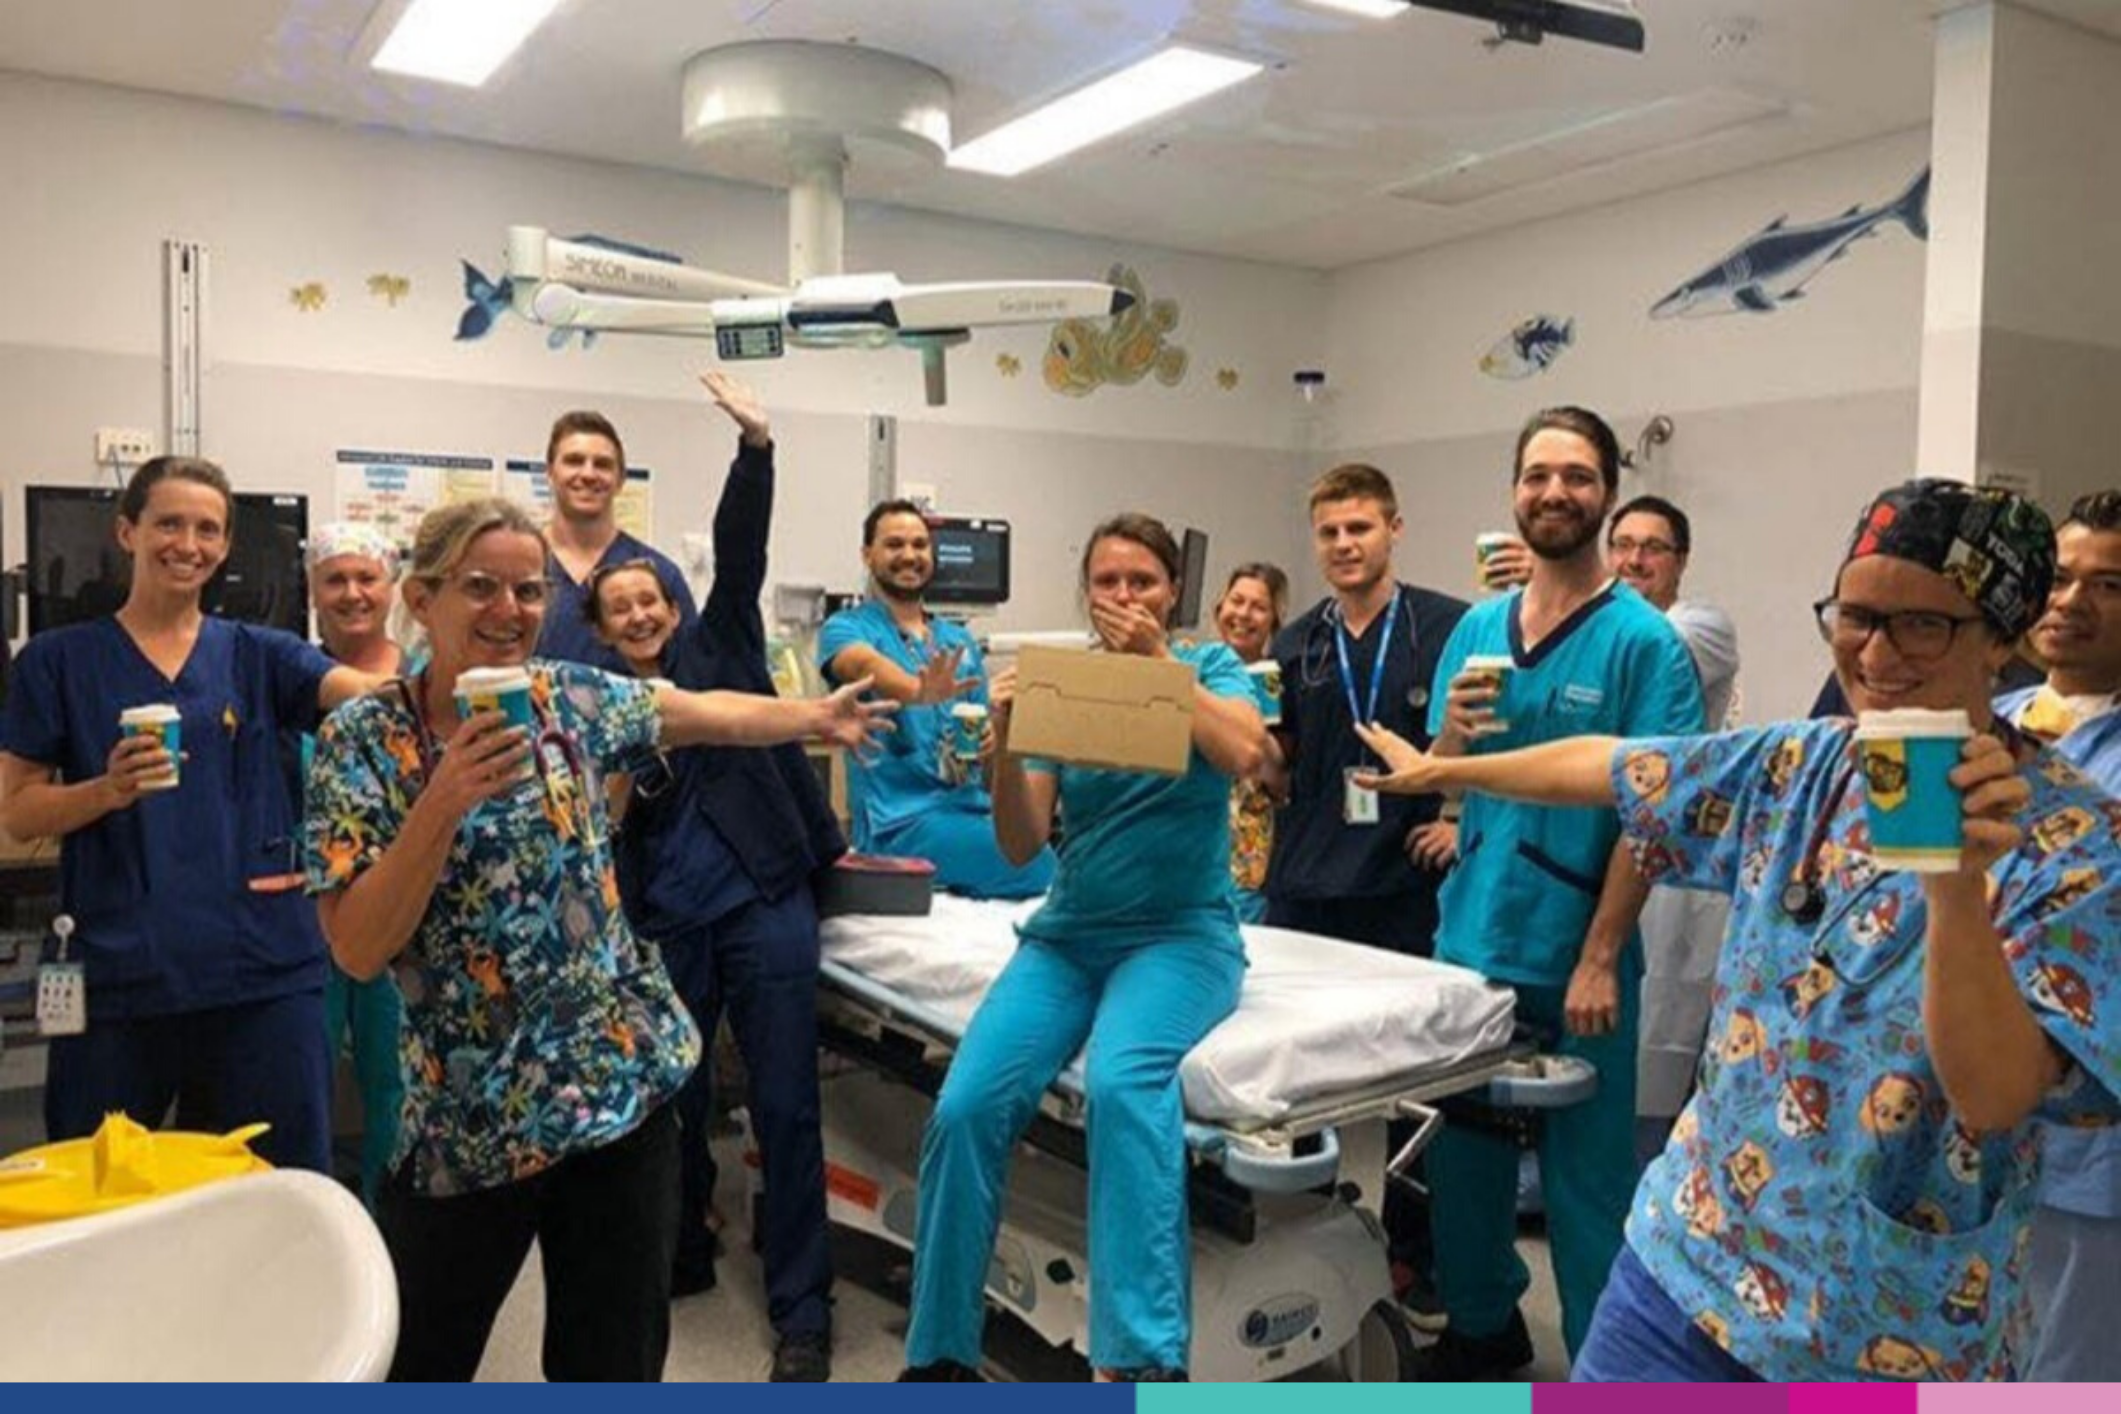 Press Release: Credabl backs the @buythemacoffee initiative to caffeinate frontline healthcare workers across Australian hospitals during the COVID-19 pandemic Image